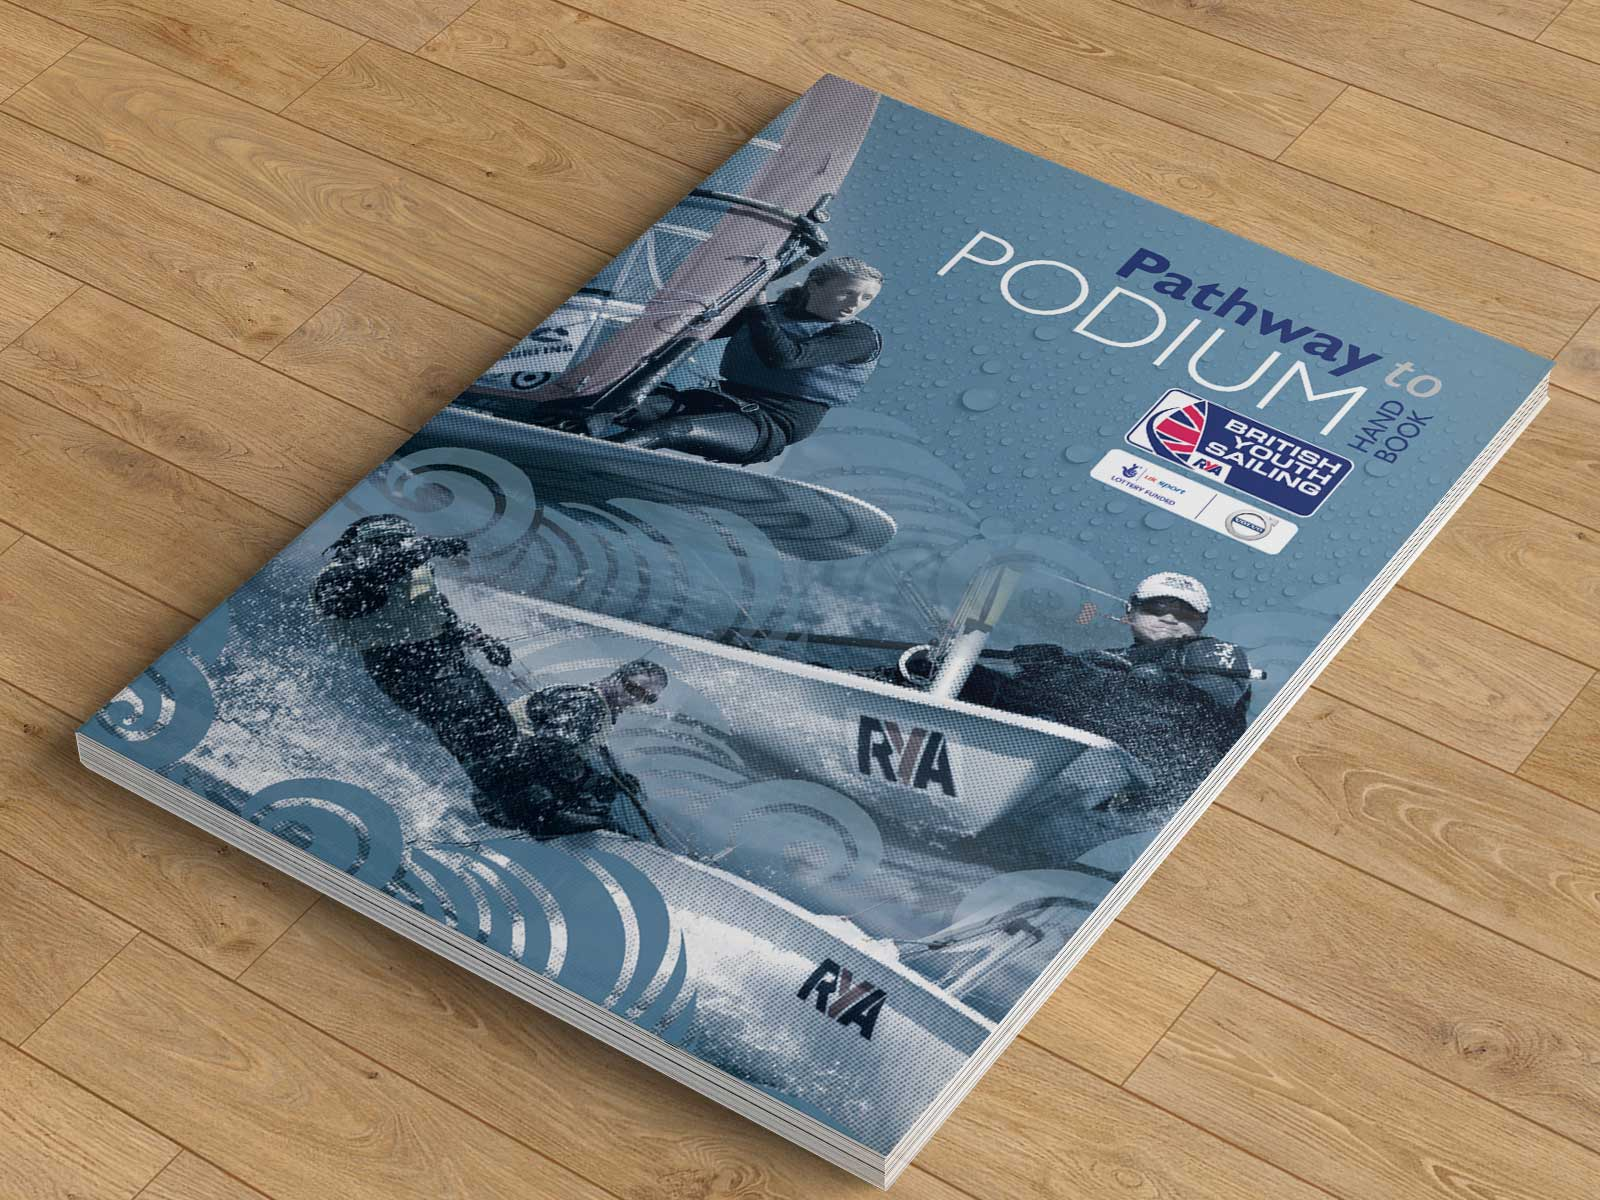 RYA Olympic Sailing Design